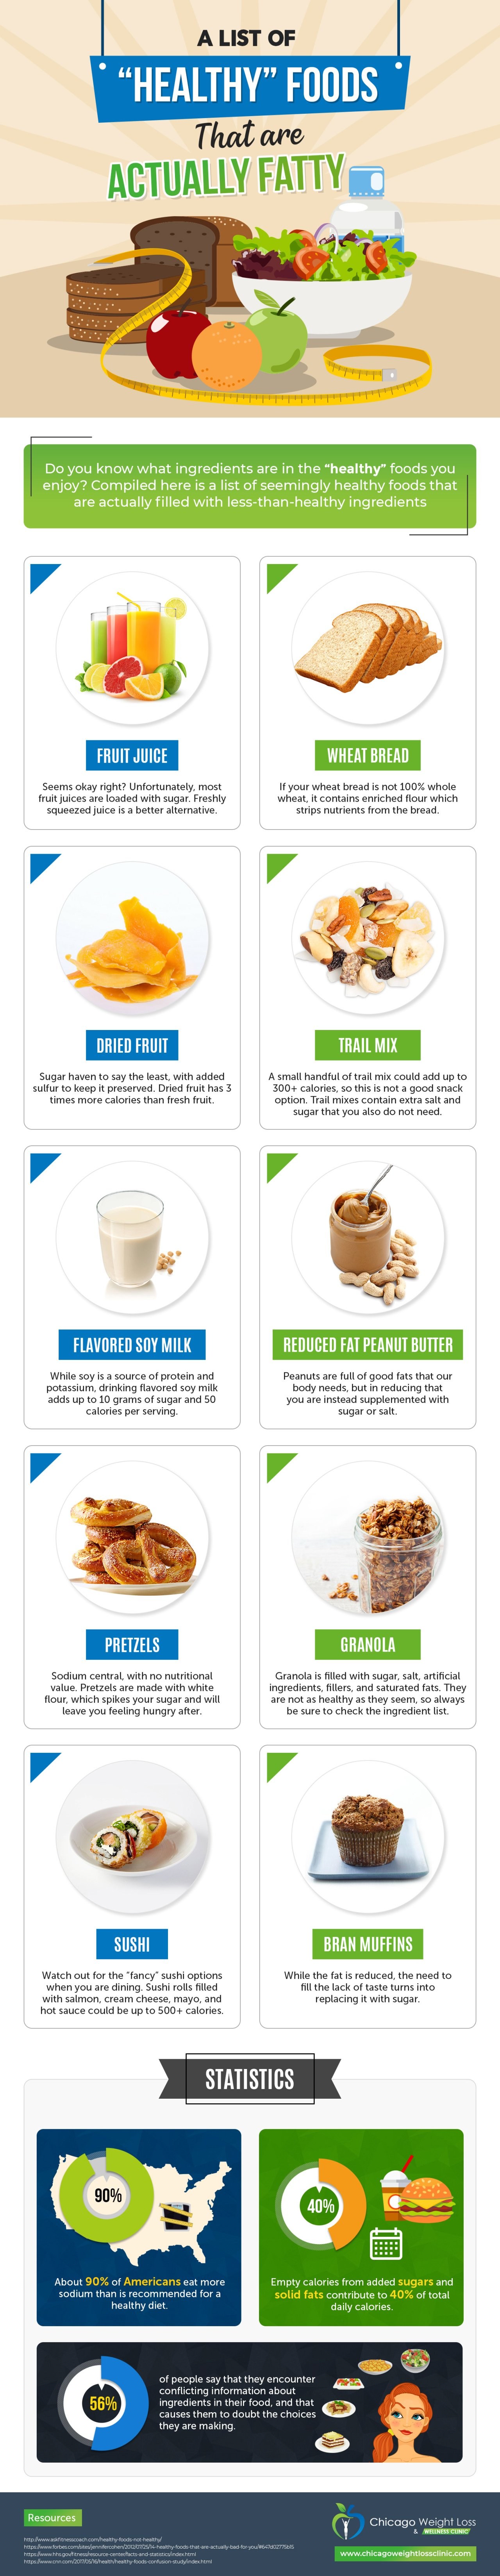 Is Your Healthy Food Really Healthy? Foods Termed Healthy but Actually Fatty - Infographic